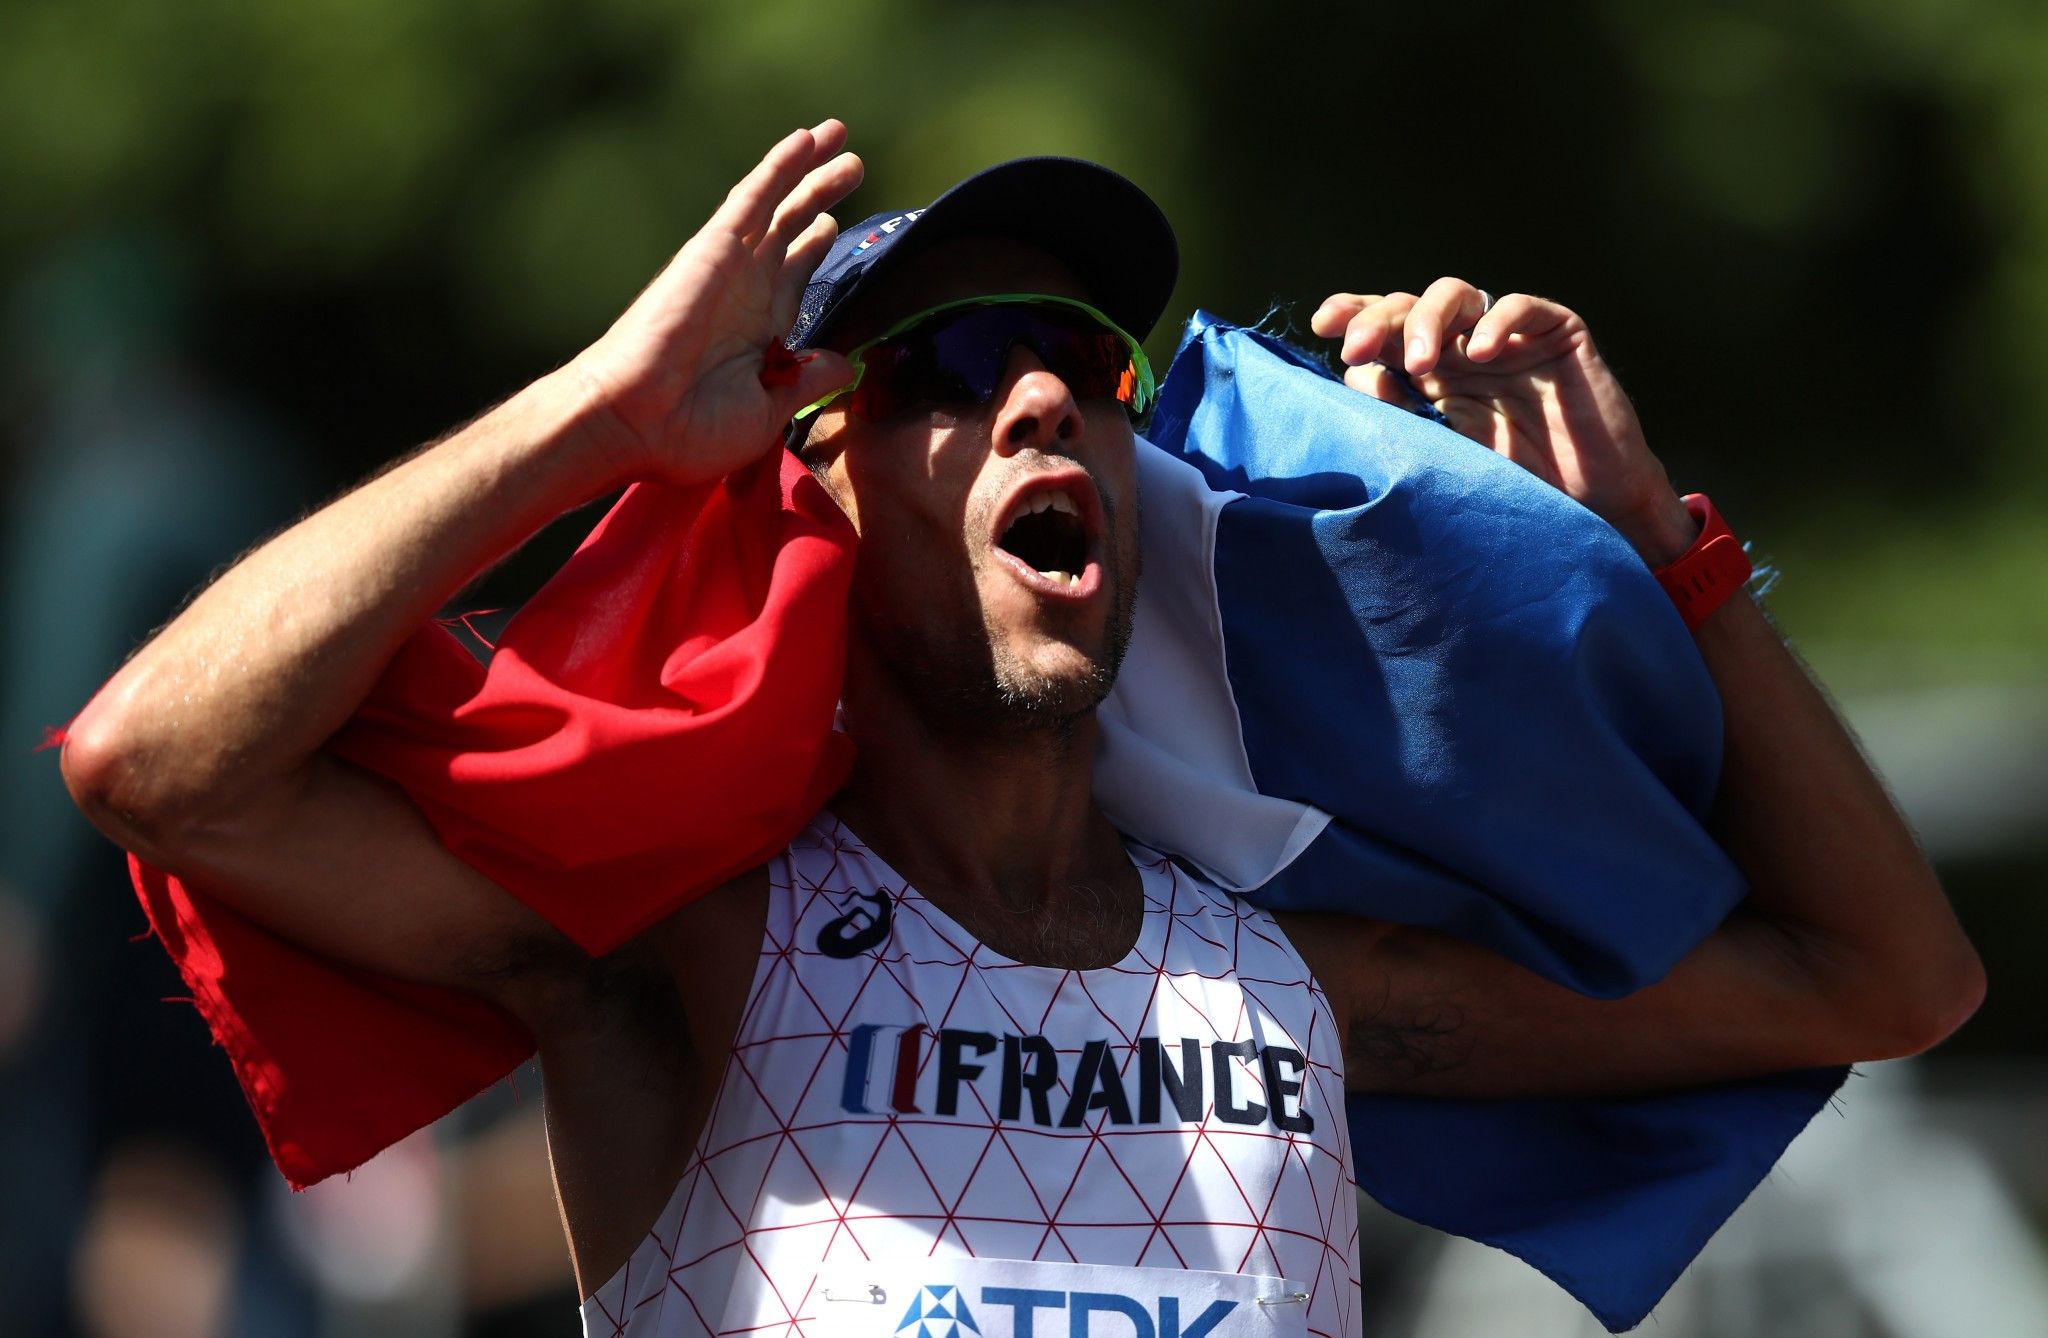 Yohann Diniz celebrates a first global title in the 50km race in London ©Getty Images